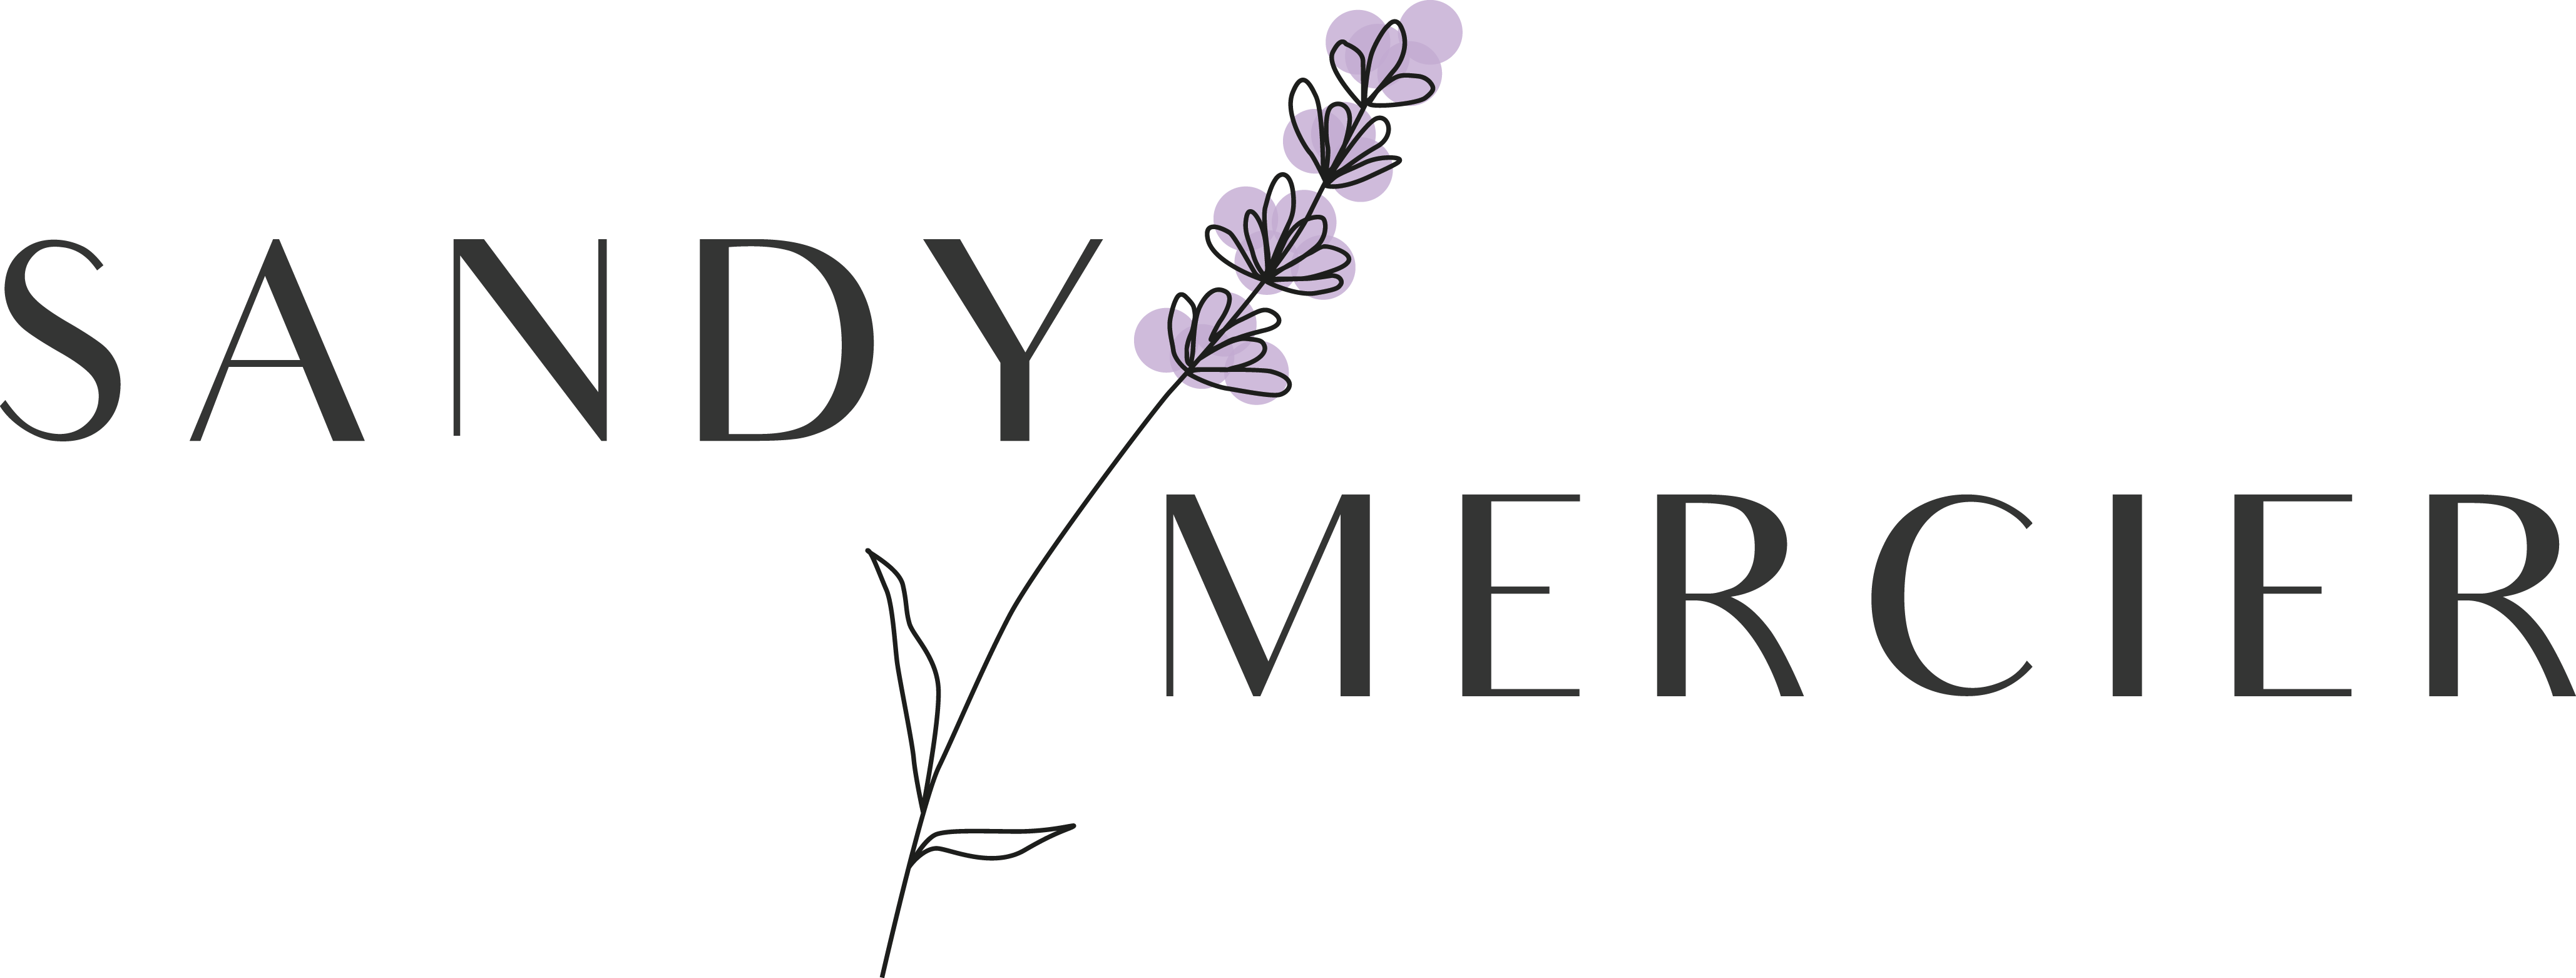 Sandy Mercier Logo